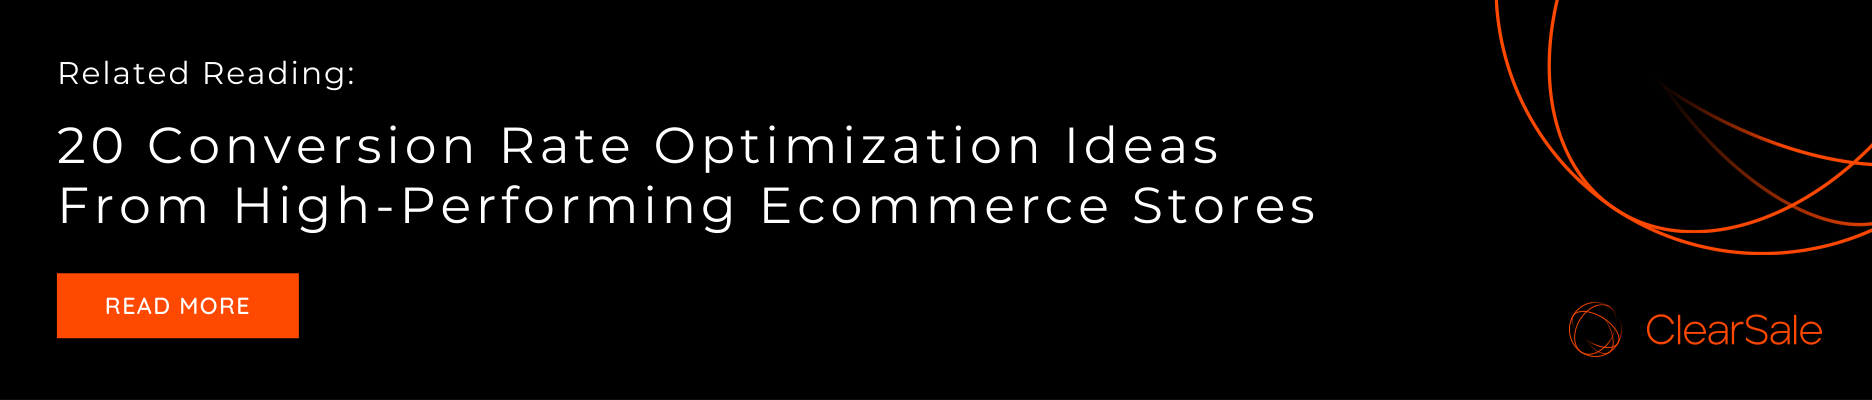 Related Reading: 20 Conversion Rate Optimization Ideas From High-Performing Ecommerce Stores